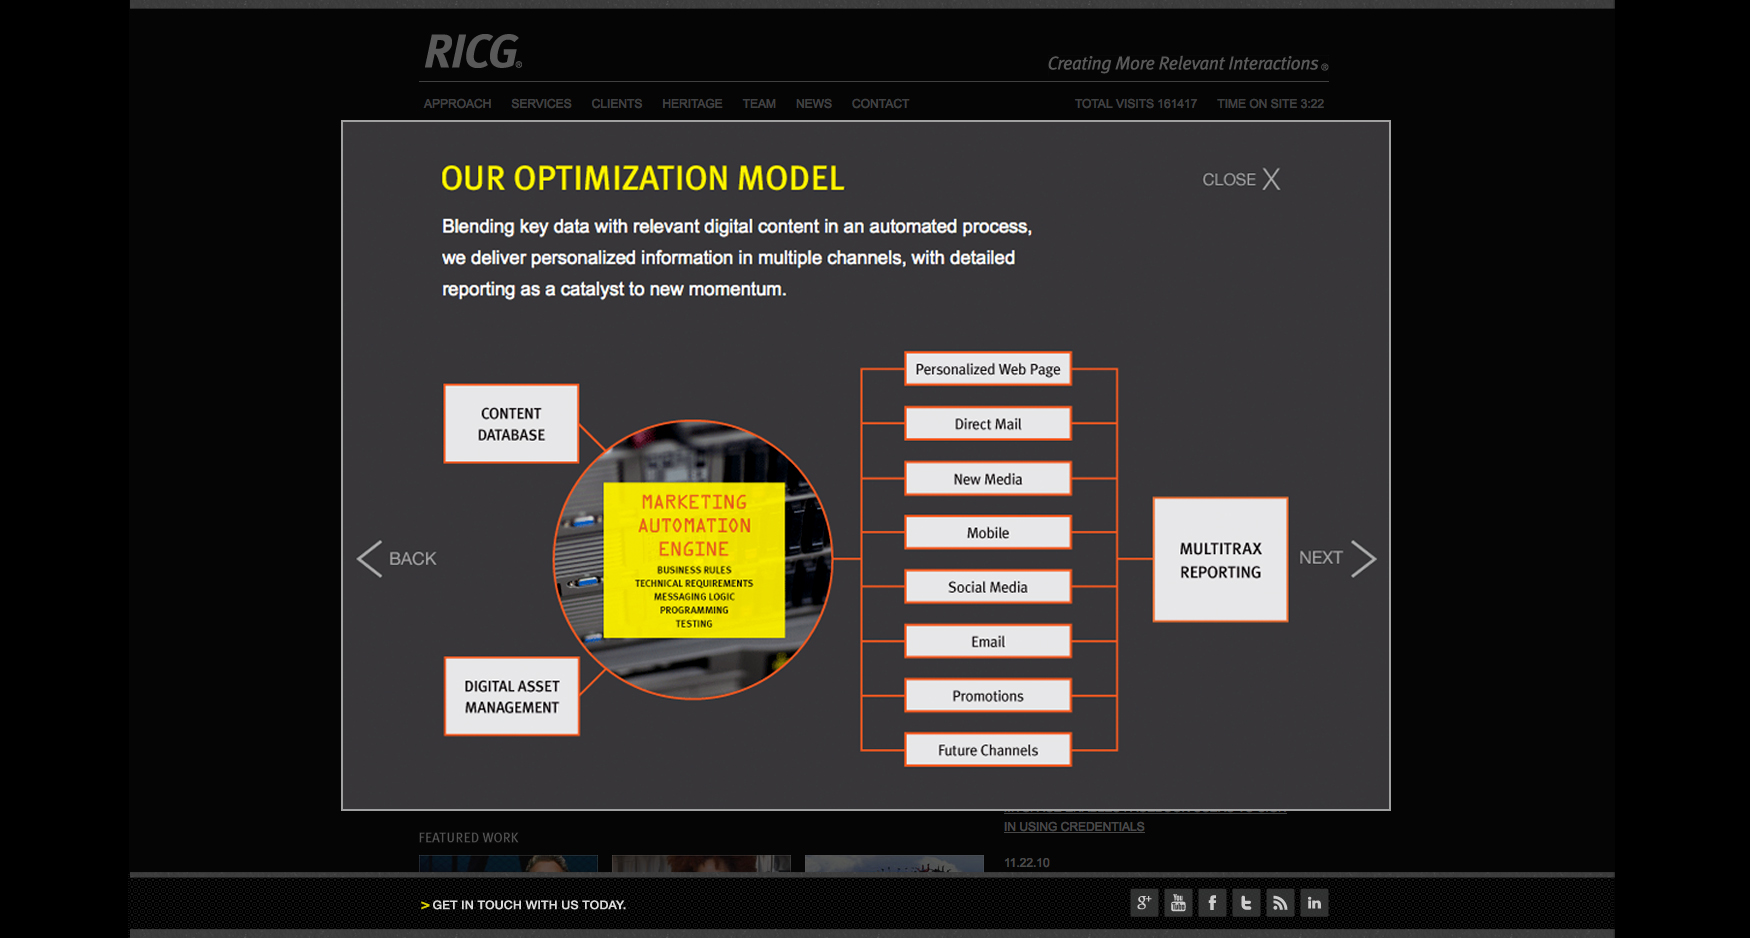 op model - RICG - CORPORATE WEBSITE